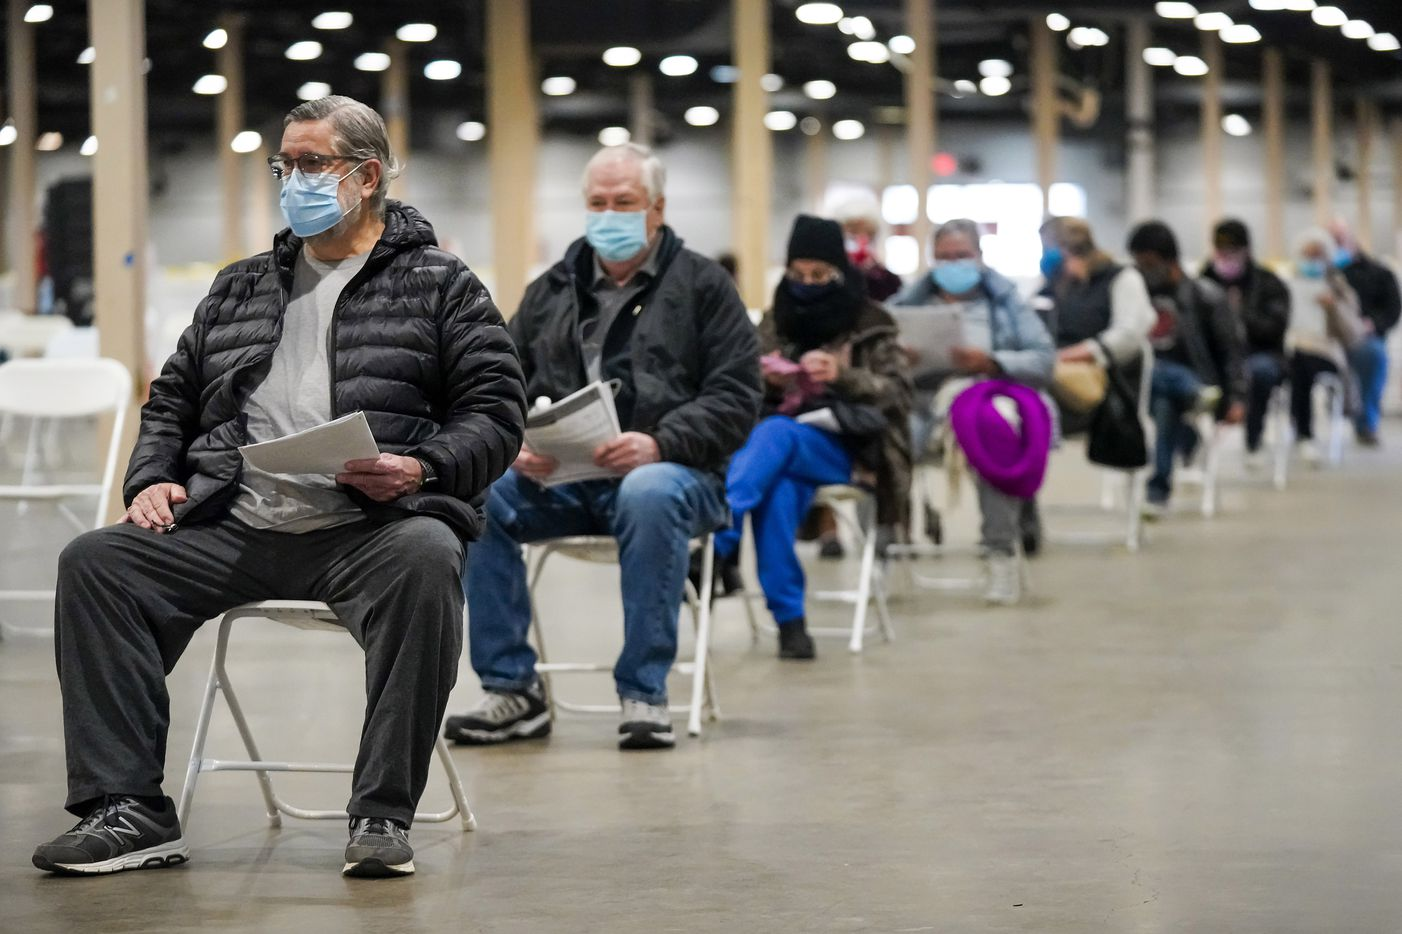 Davis Mosmeyer (left) waits at the front of the production line to receive the COVID-19 vaccine in Fair Park, Dallas on Monday, January 11, 2021. Dallas County launched its first